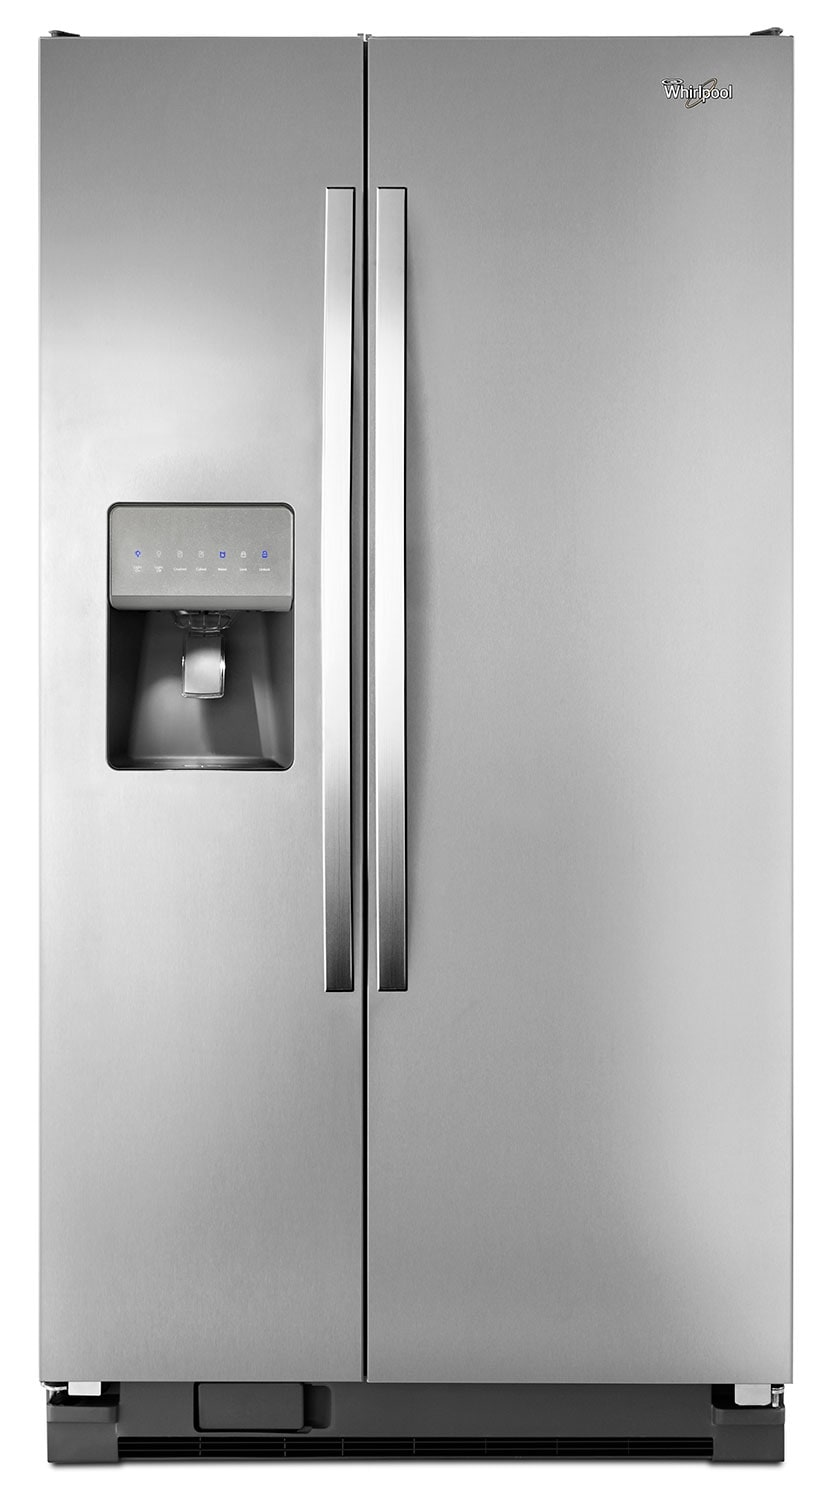 Refrigerators and Freezers - Whirlpool 24 Cu. Ft. Side-by-Side Refrigerator – WRS325FDAM